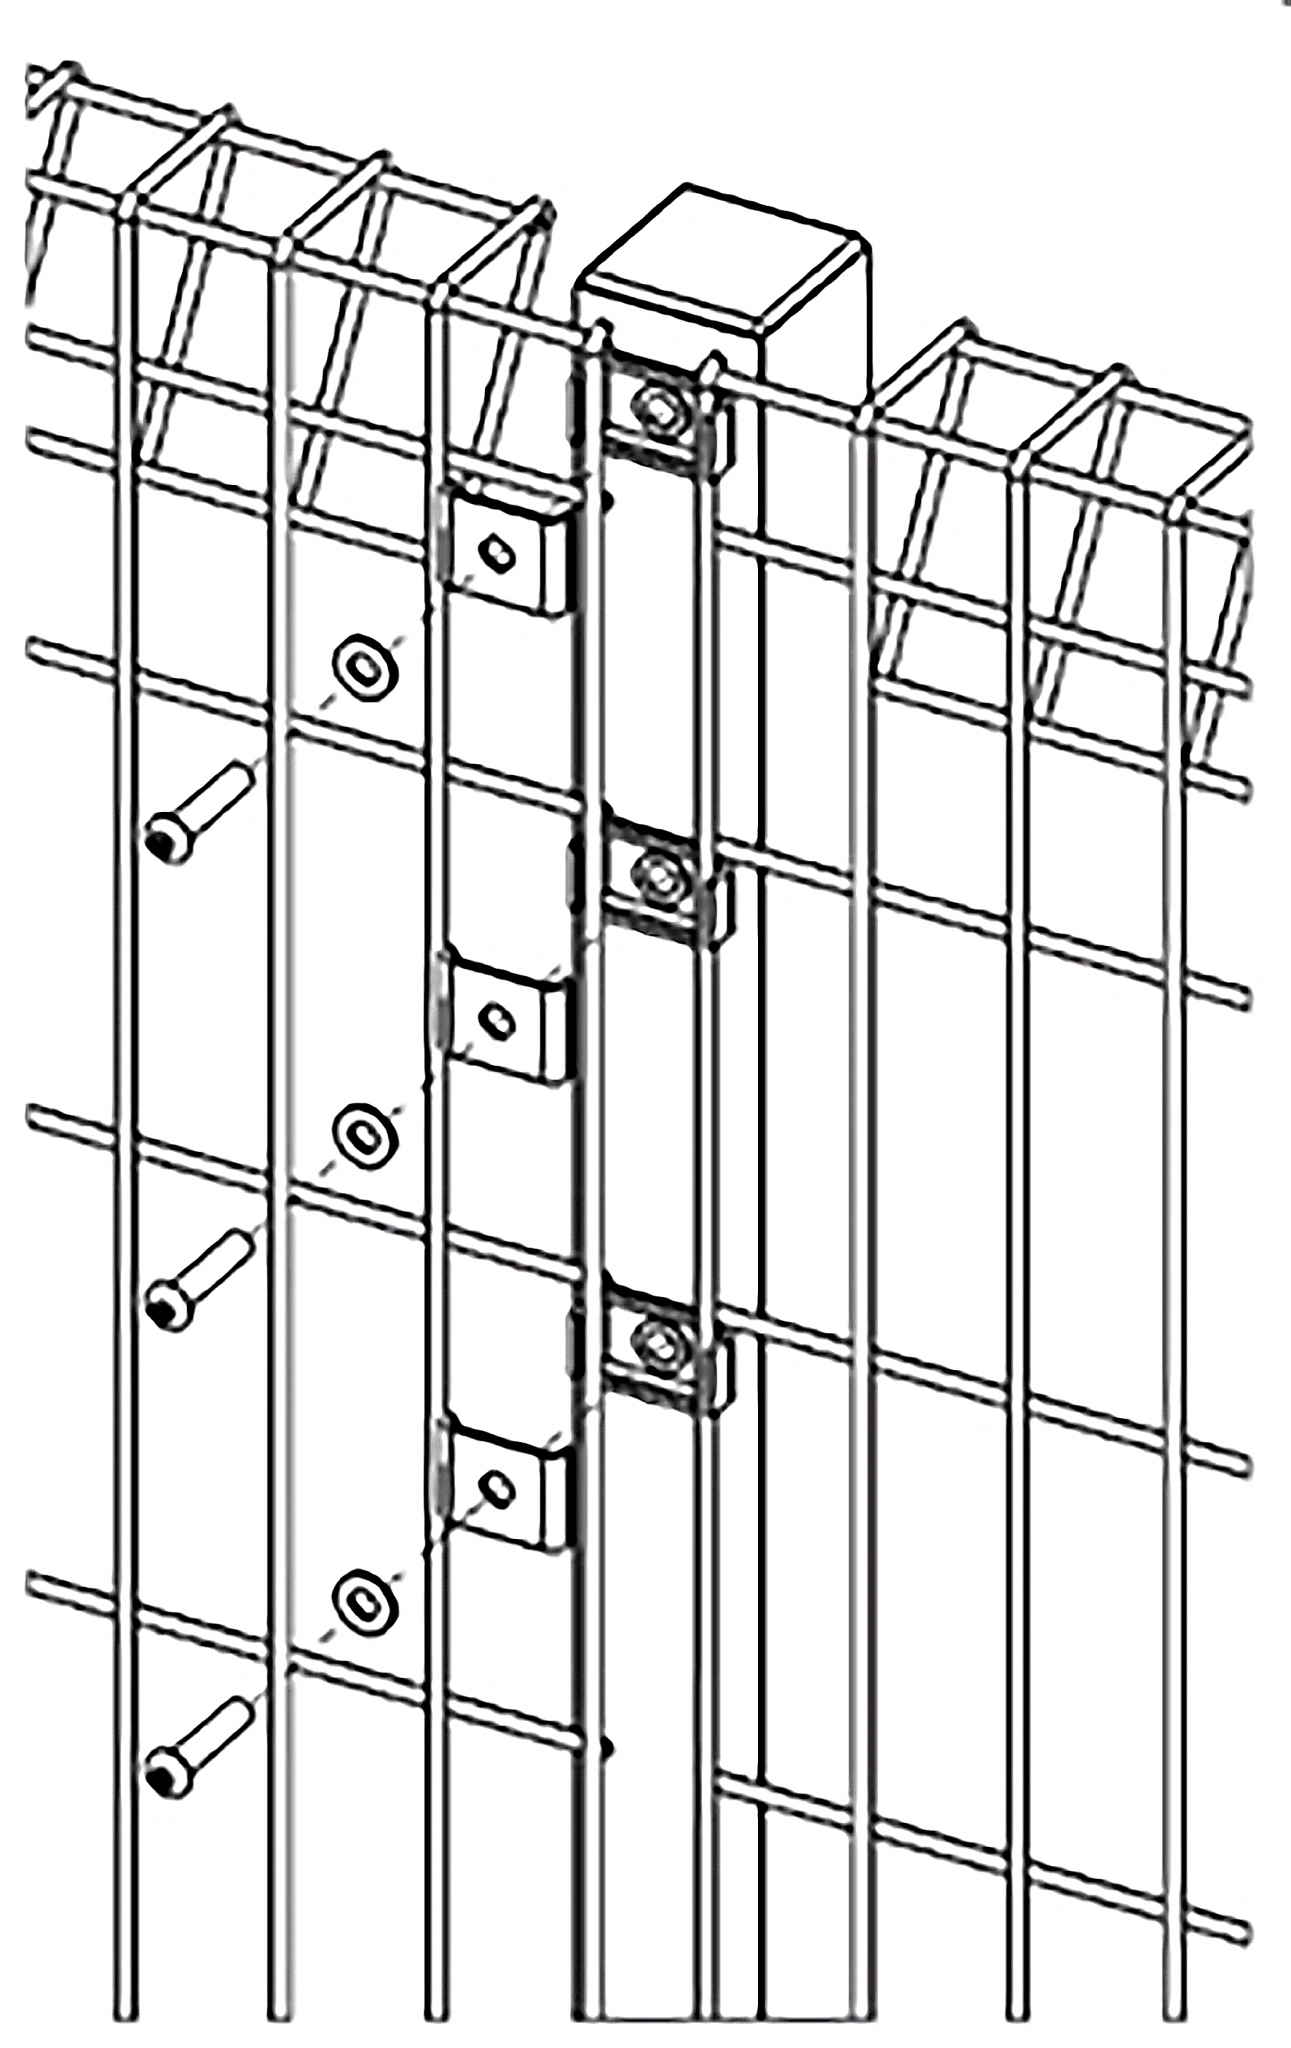 An illustration for Heras Apollo Rolled top Fencing